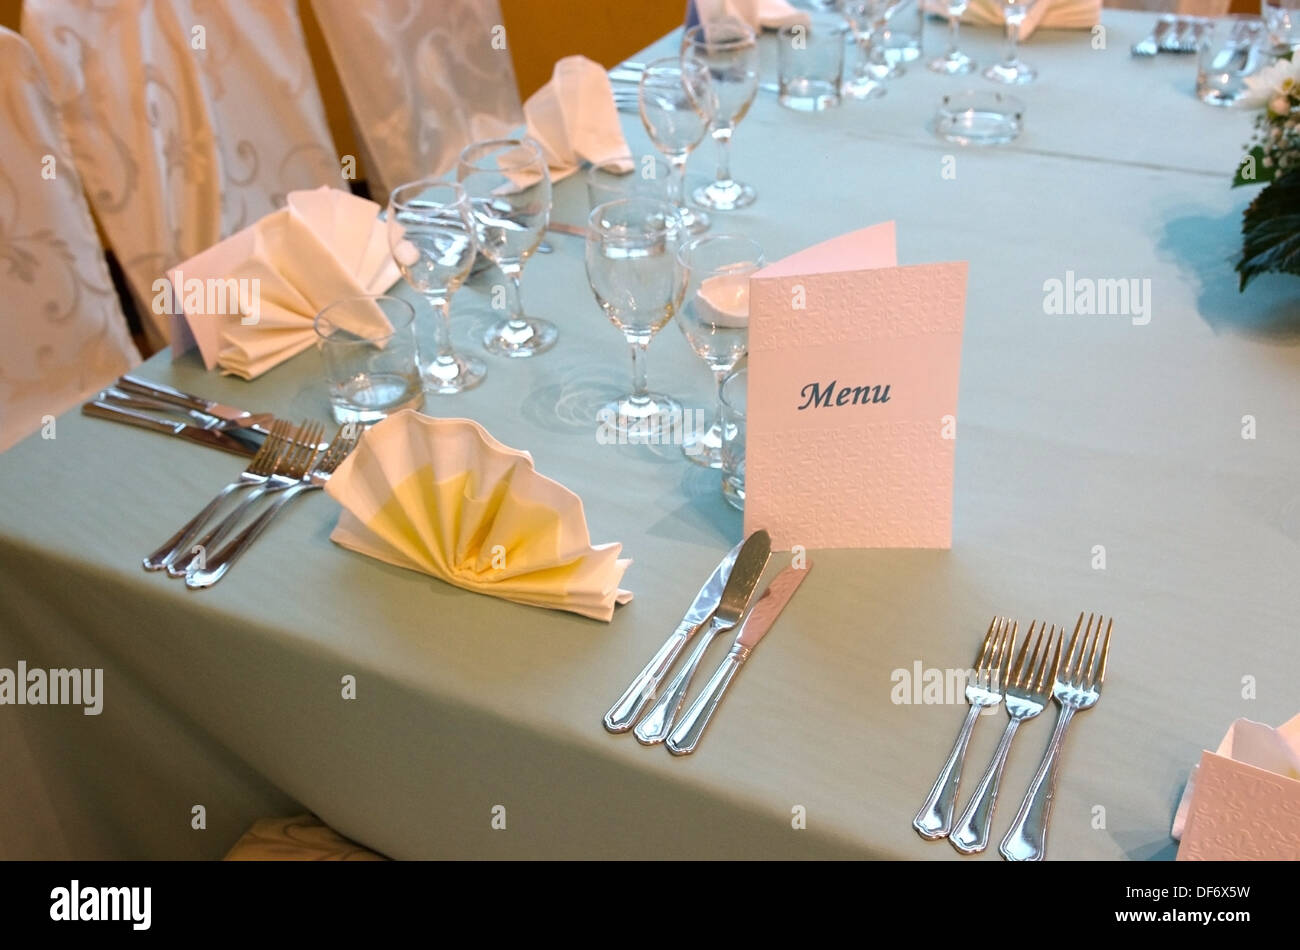 a menu and table setup in a restaurant stock photo 61003205 alamy